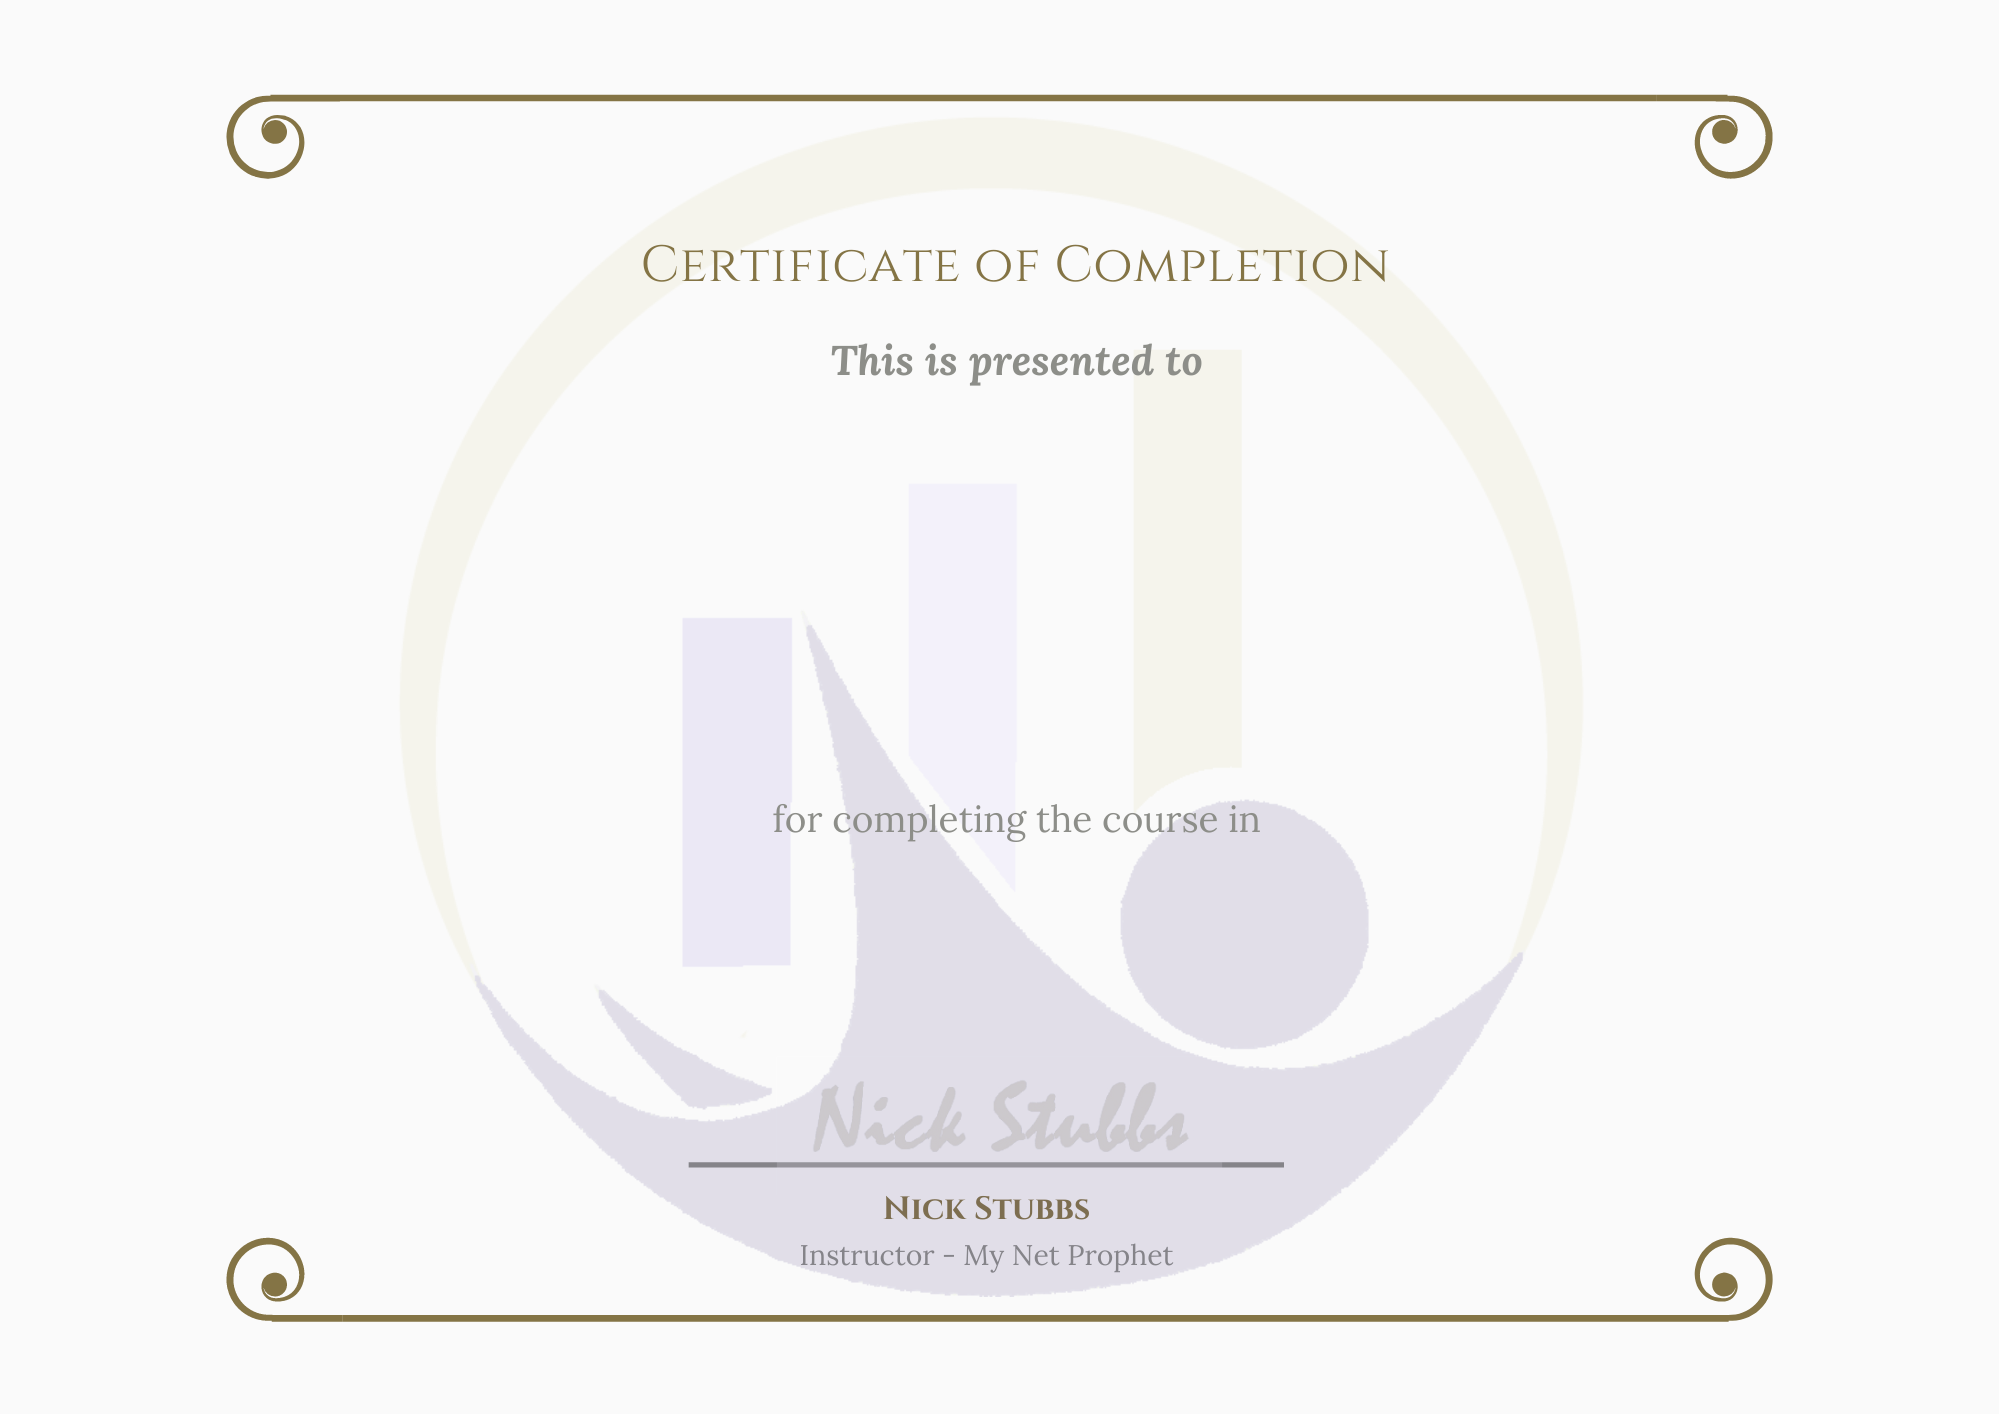 Stock Video Certificate of Completion